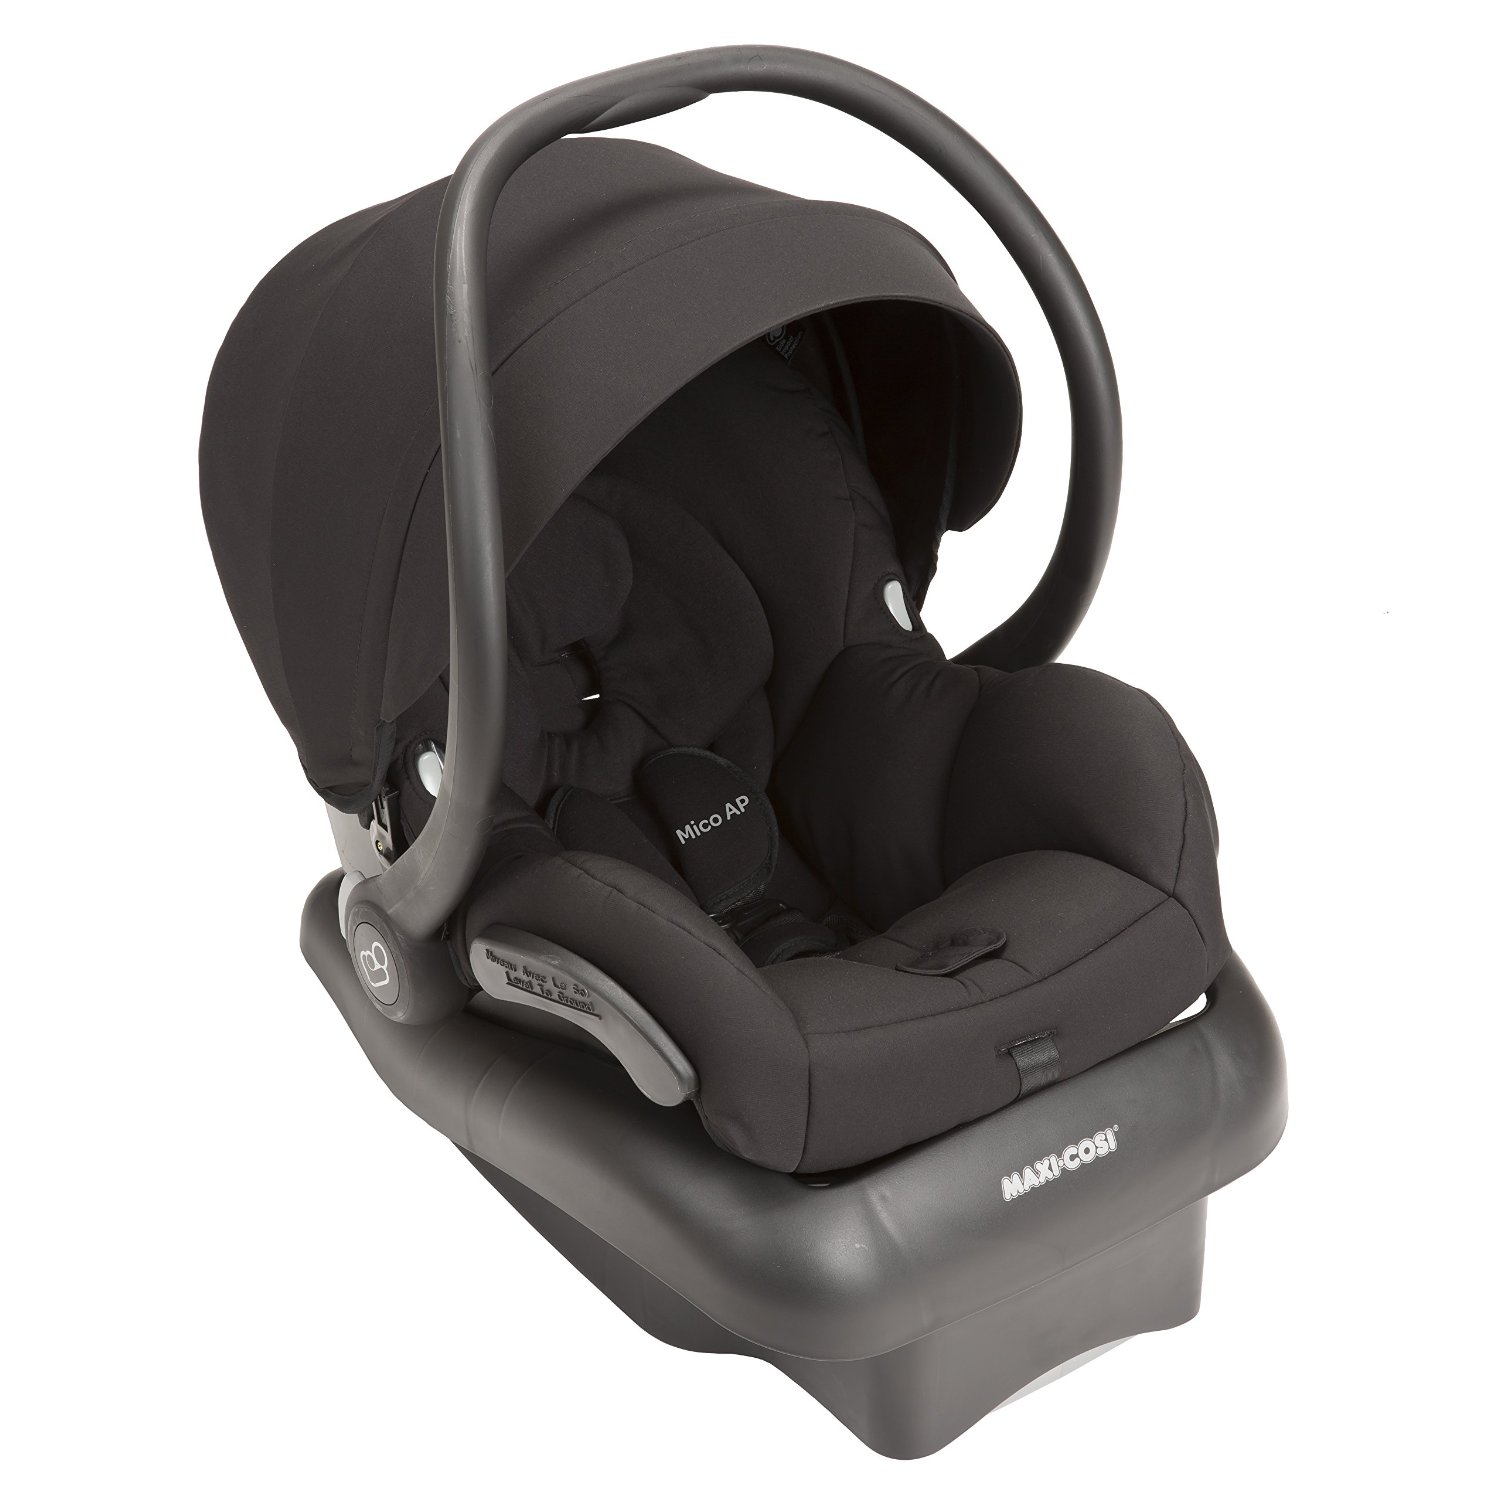 Maxi Cosi Mico Ap Car Seat Video